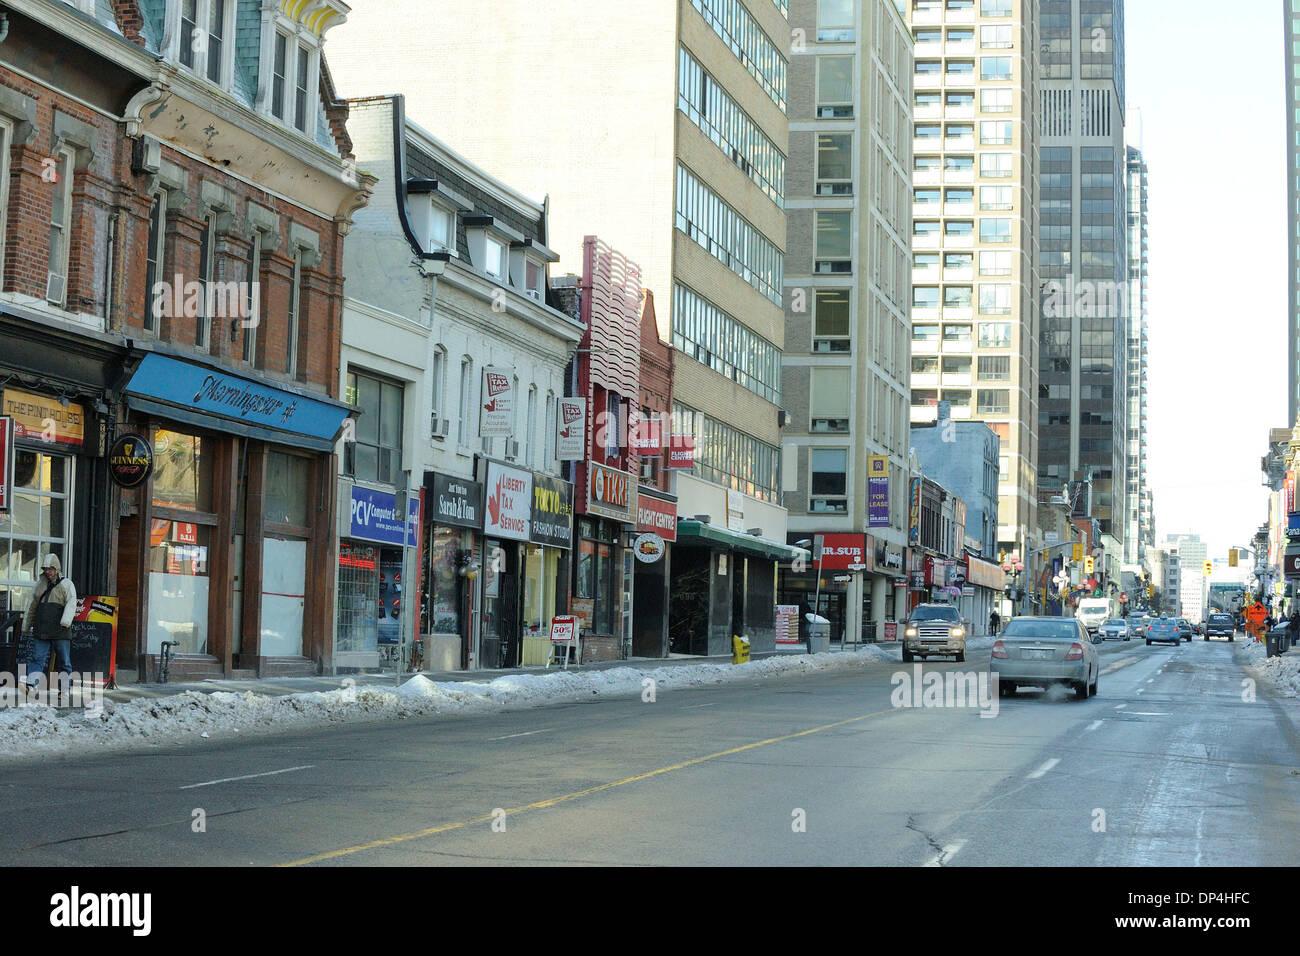 Weather Toronto: Toronto, Canada. 7th Jan 2014. The Extreme Cold Weather